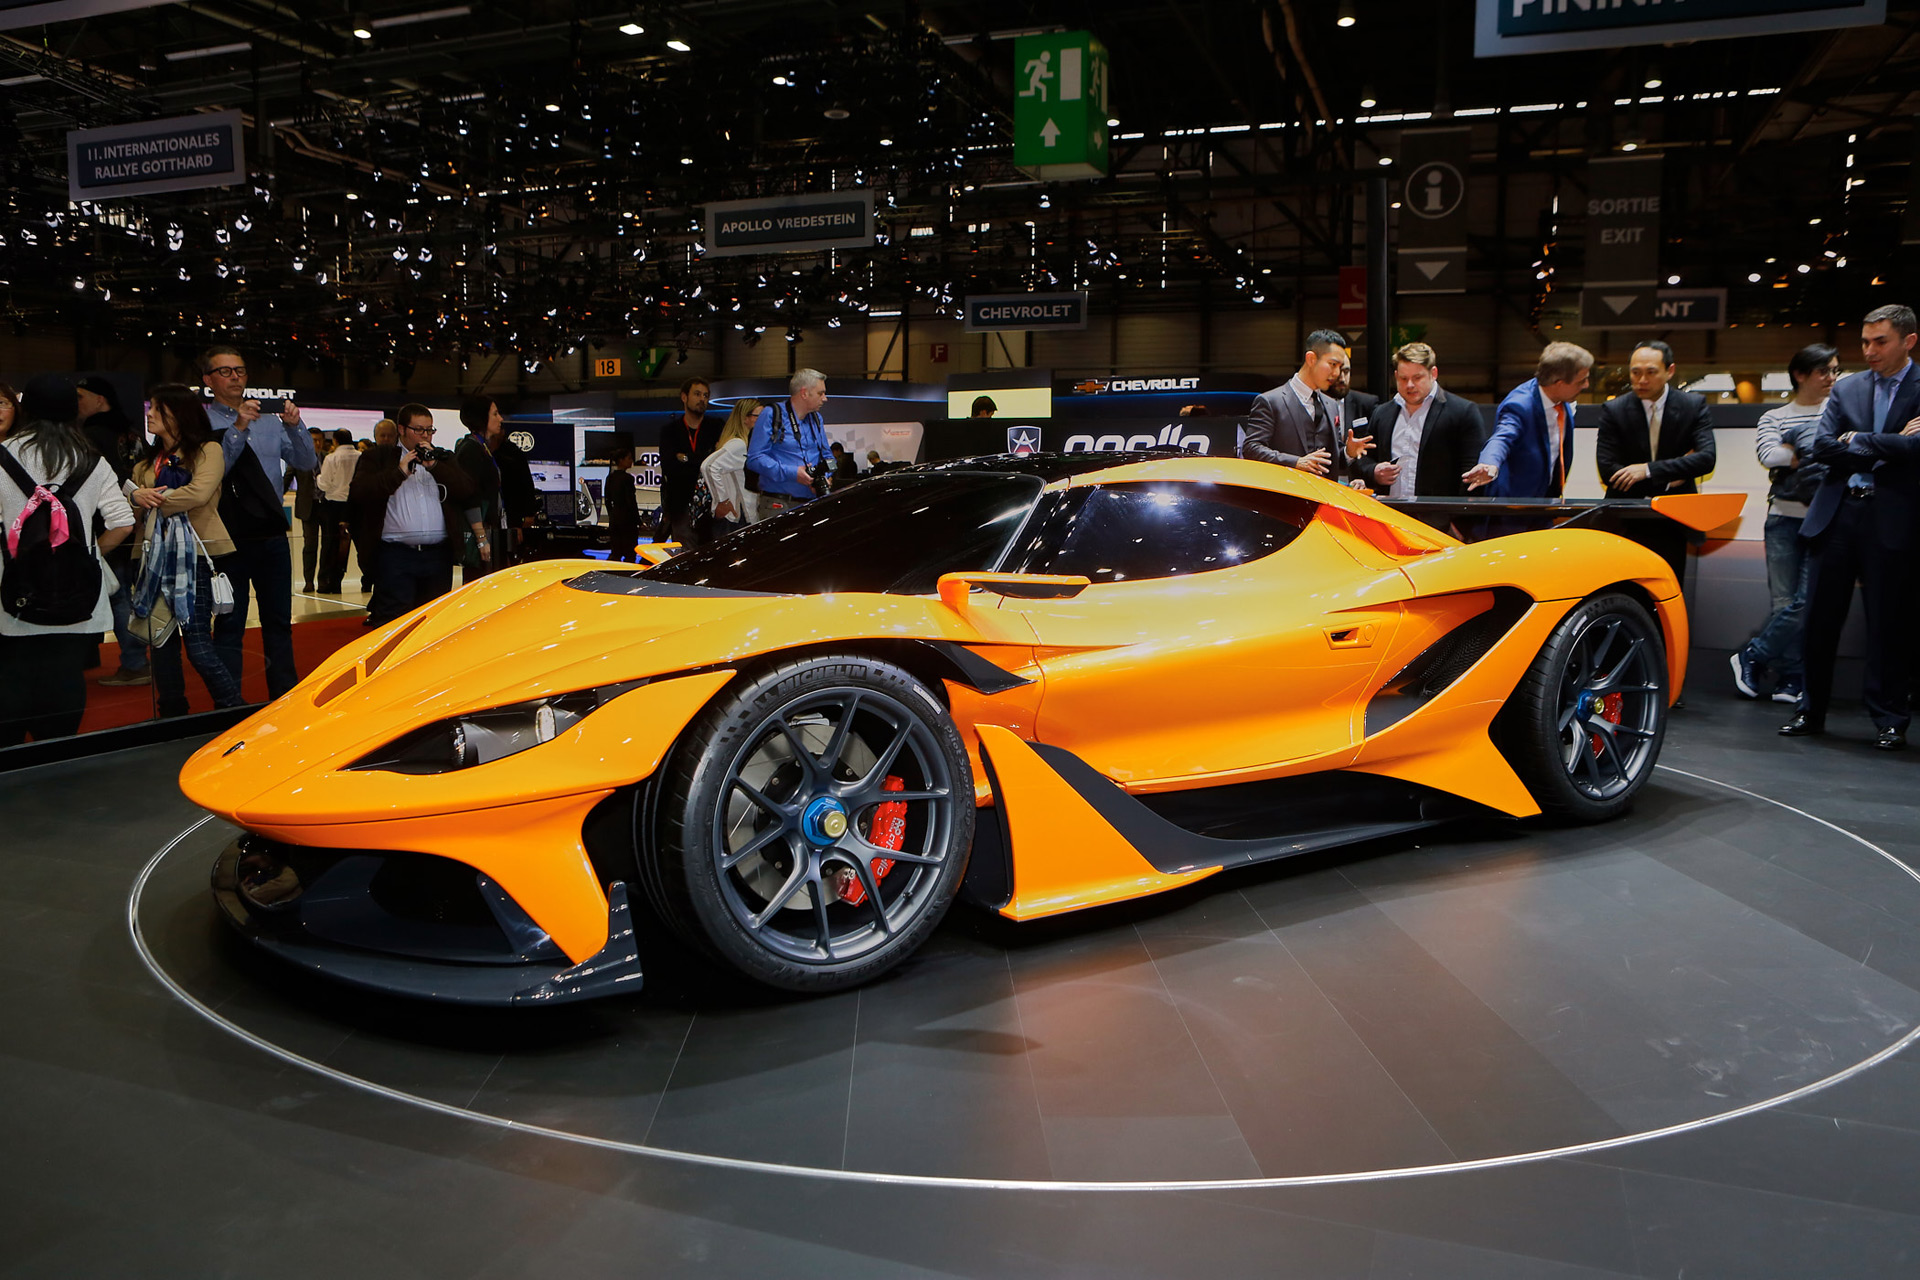 Apollo arrives in Geneva with 986-hp Arrow supercar